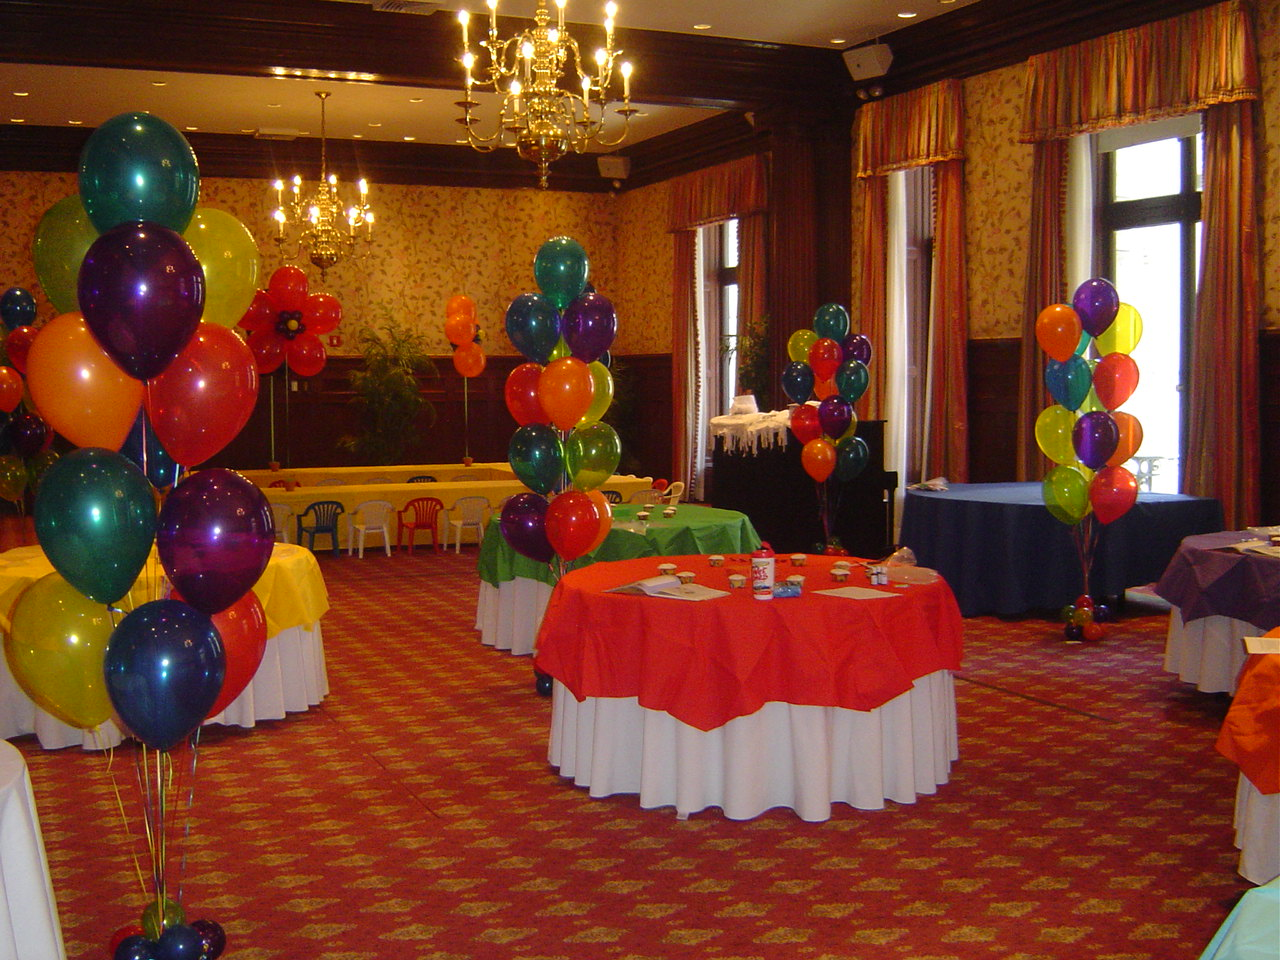 11 Year Old Bedroom Ideas The Party Times Decorate A Cake With Rainbow Colors